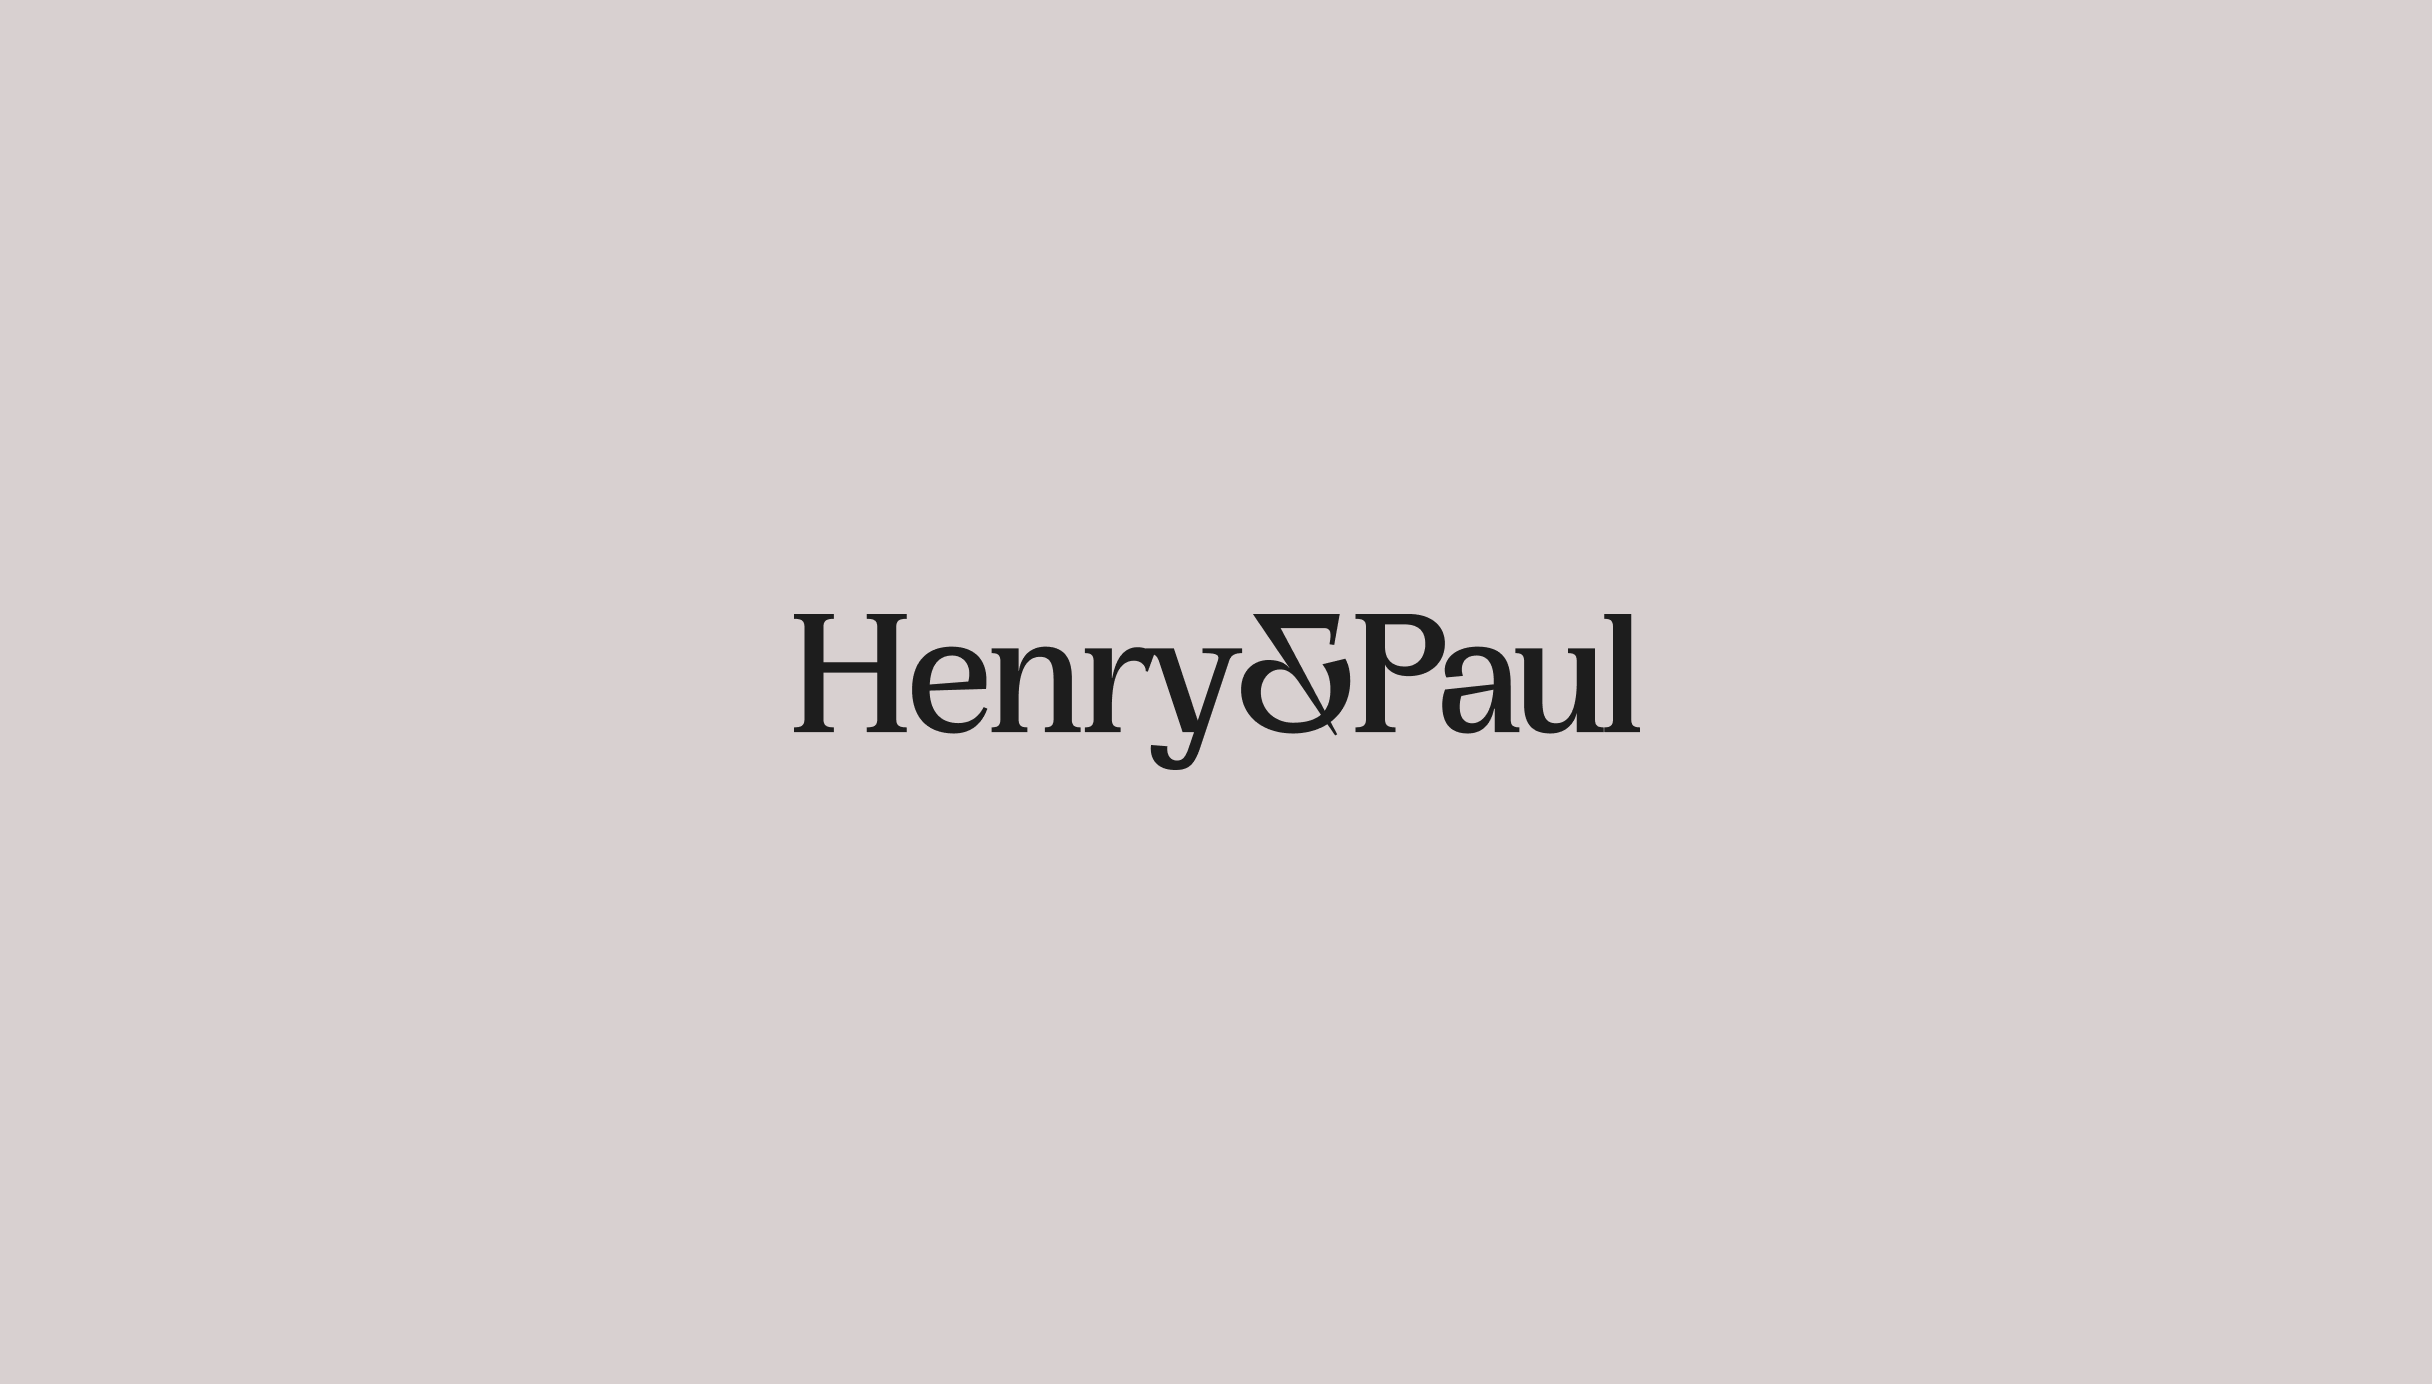 New Henry & Paul logo